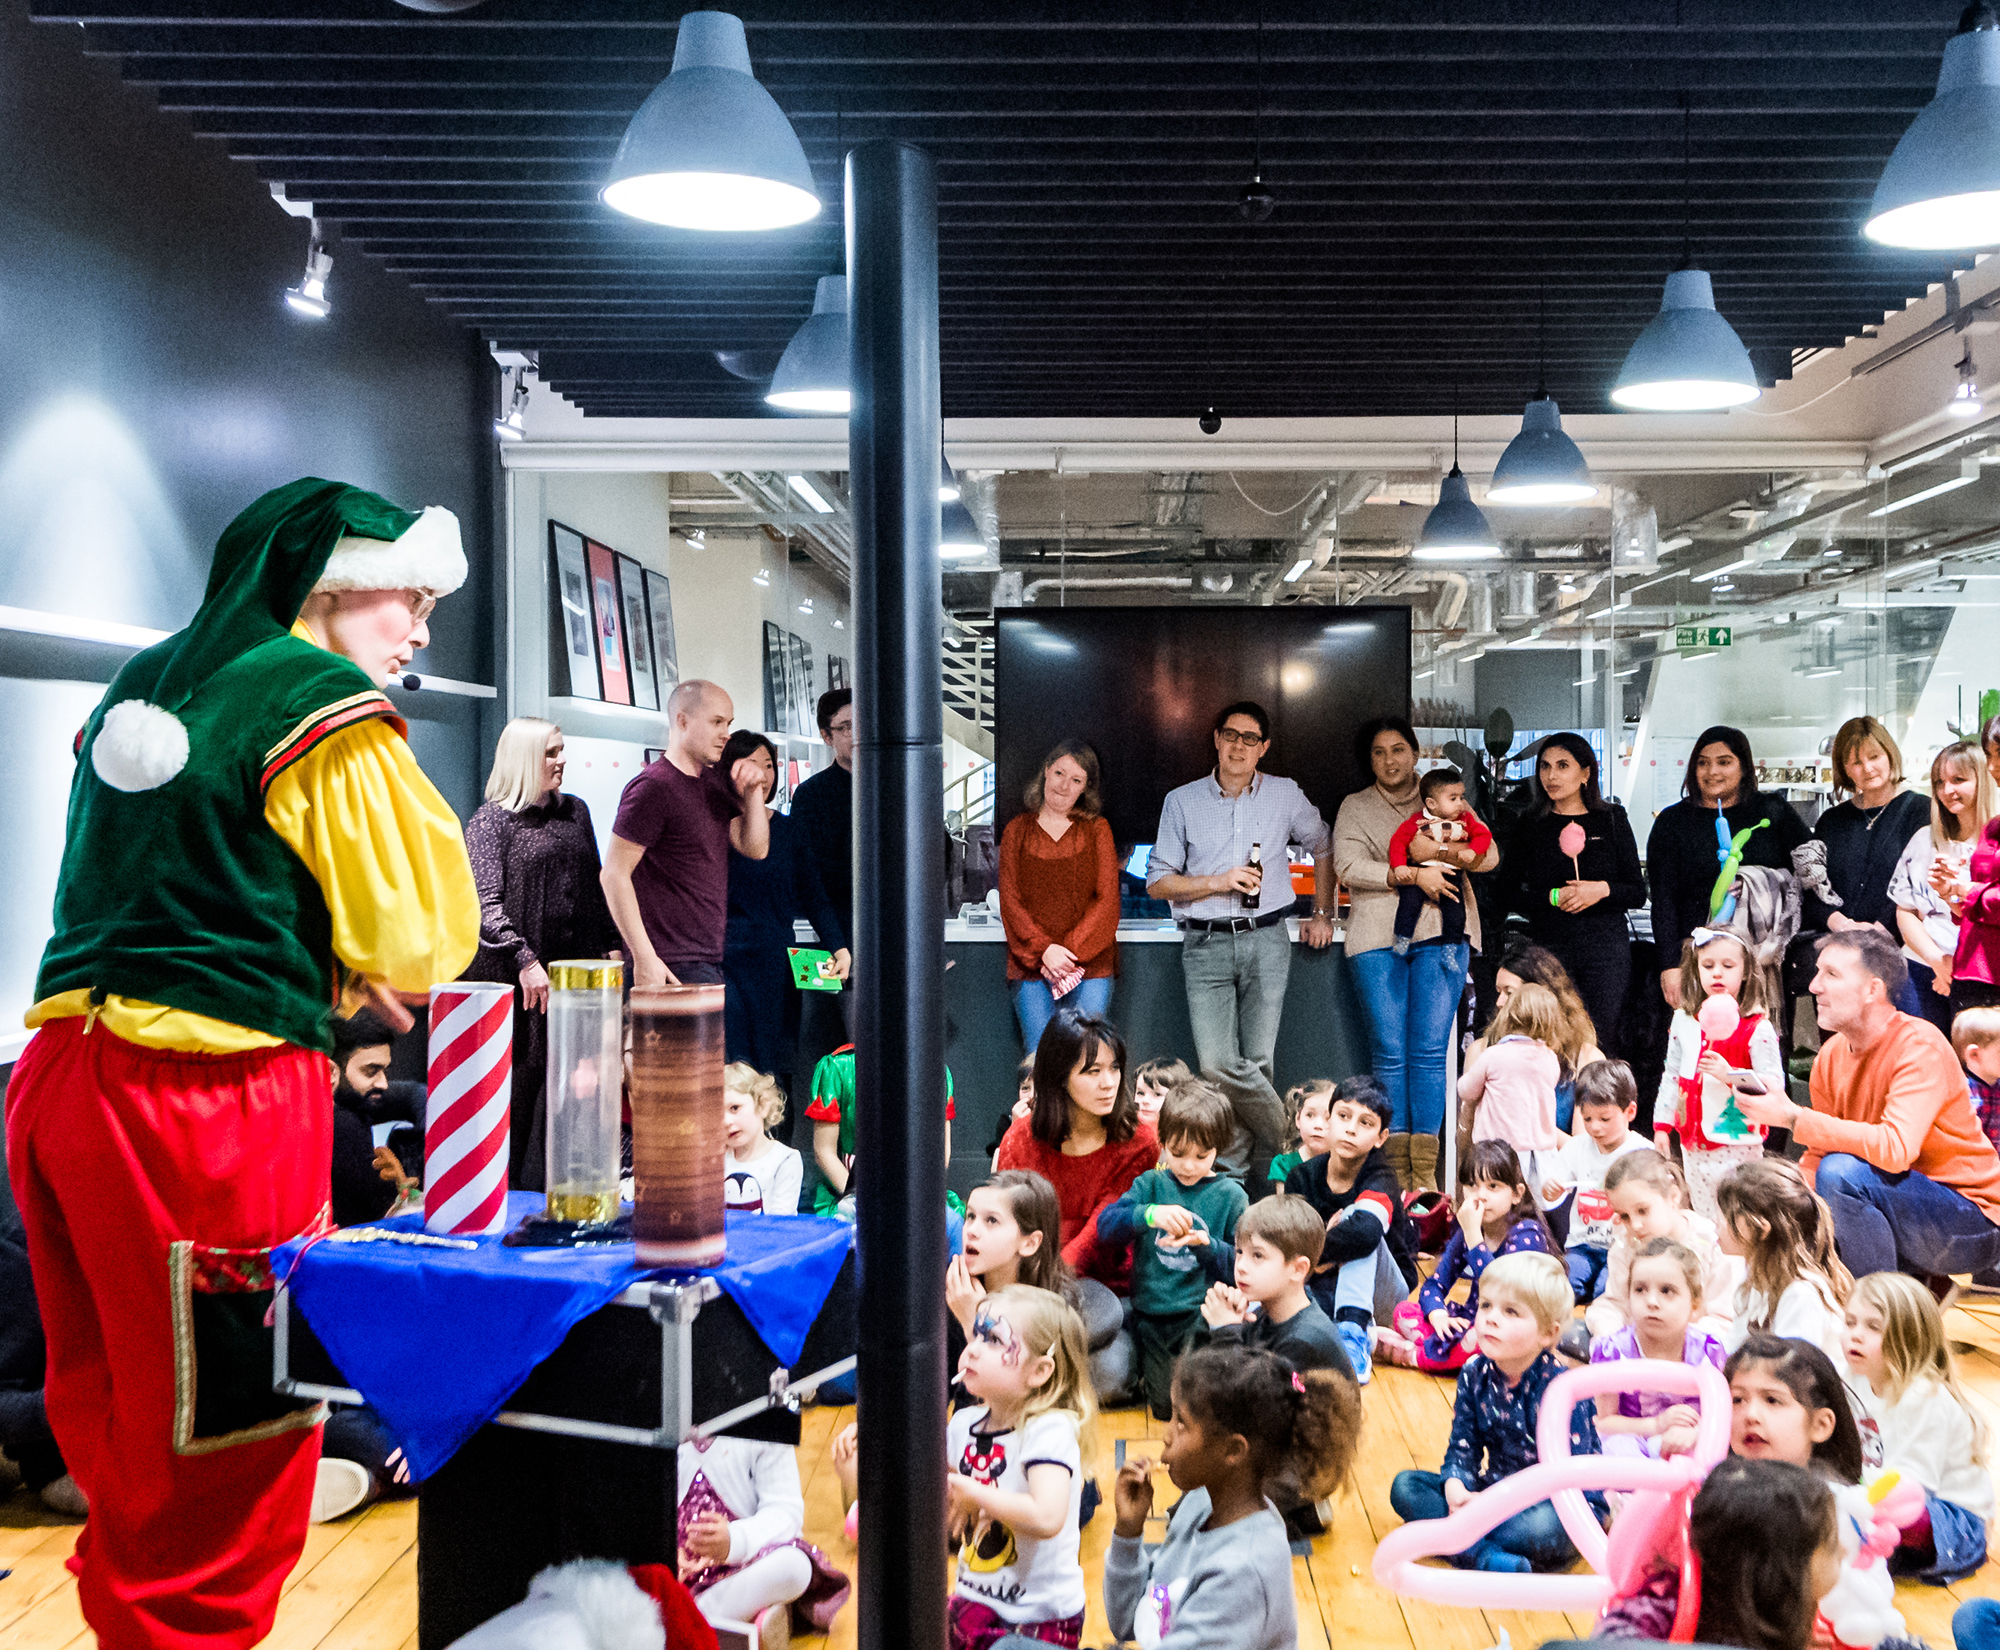 kidspeople childrens event staffing management christmas events